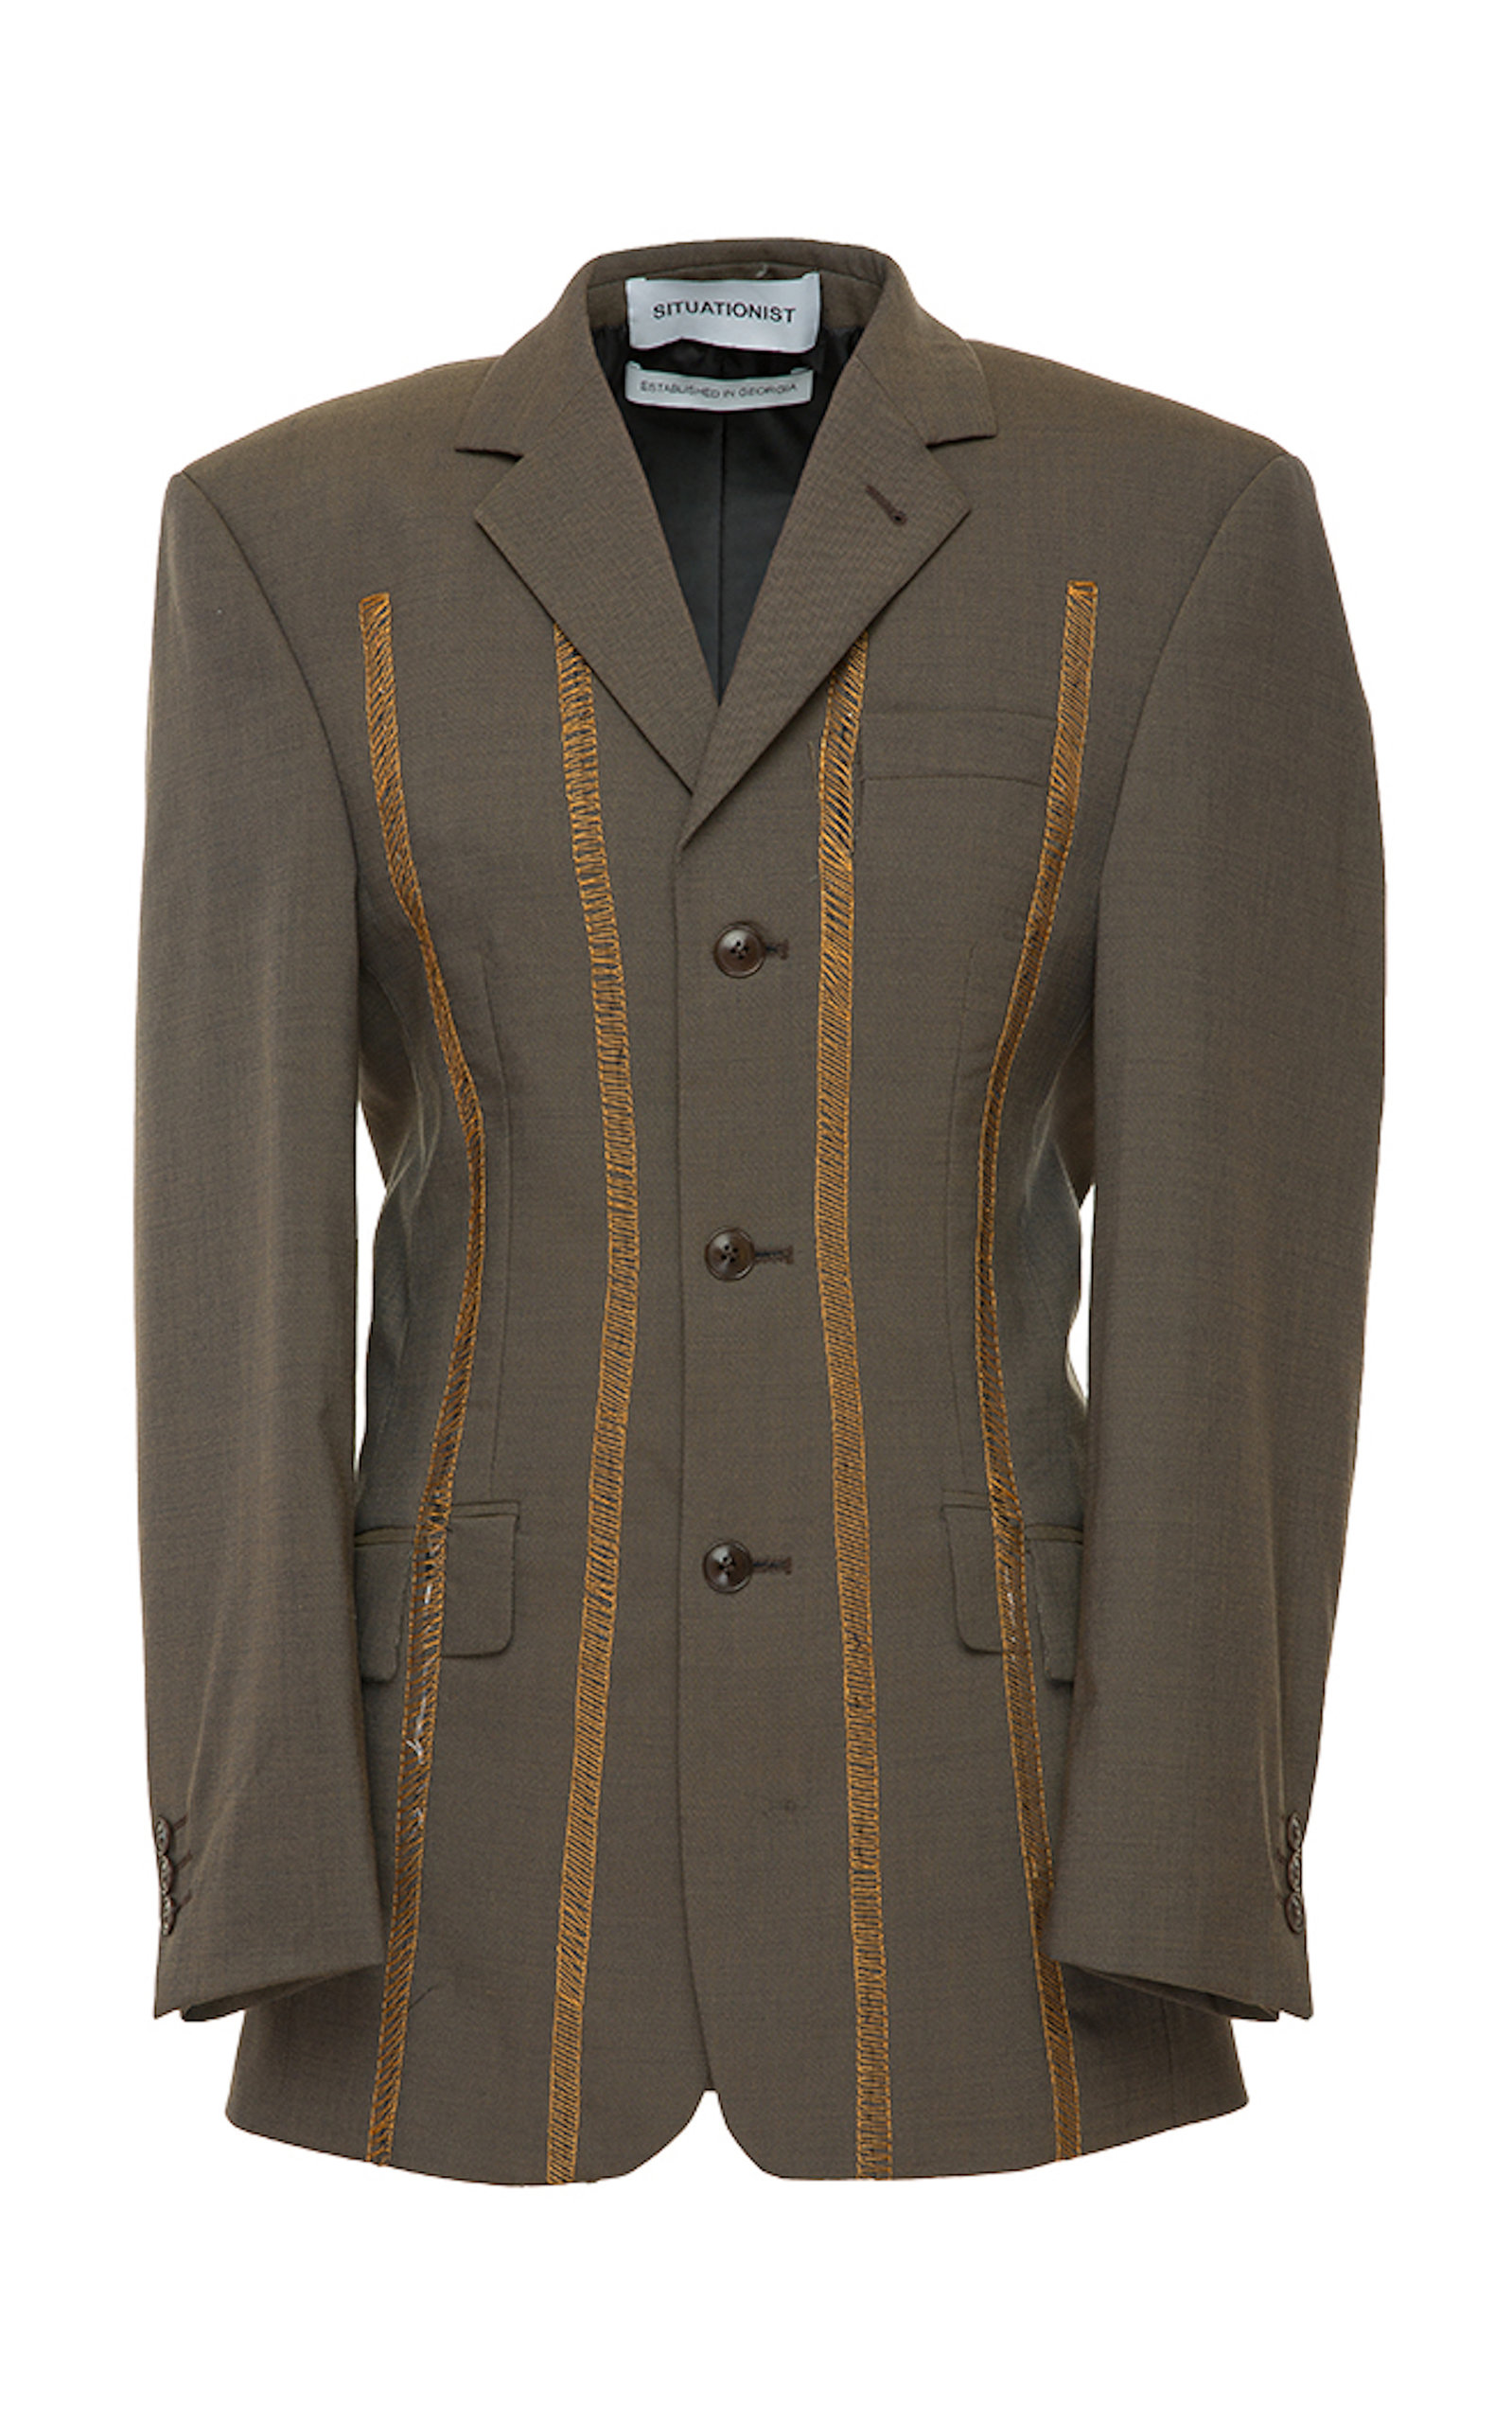 SITUATIONIST Oversized Classic Wool Blazer in Brown